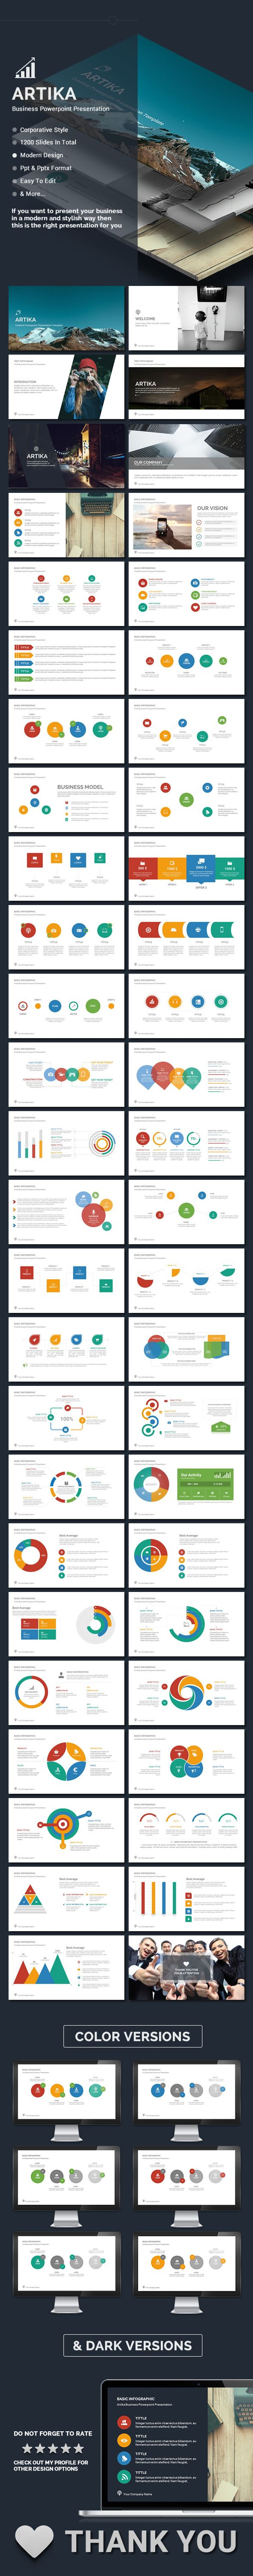 Artika - V.2 Powerpoint Template #design #slides Download: http://graphicriver.net/item/artika-v2-powerpoint/14413172?ref=ksioks